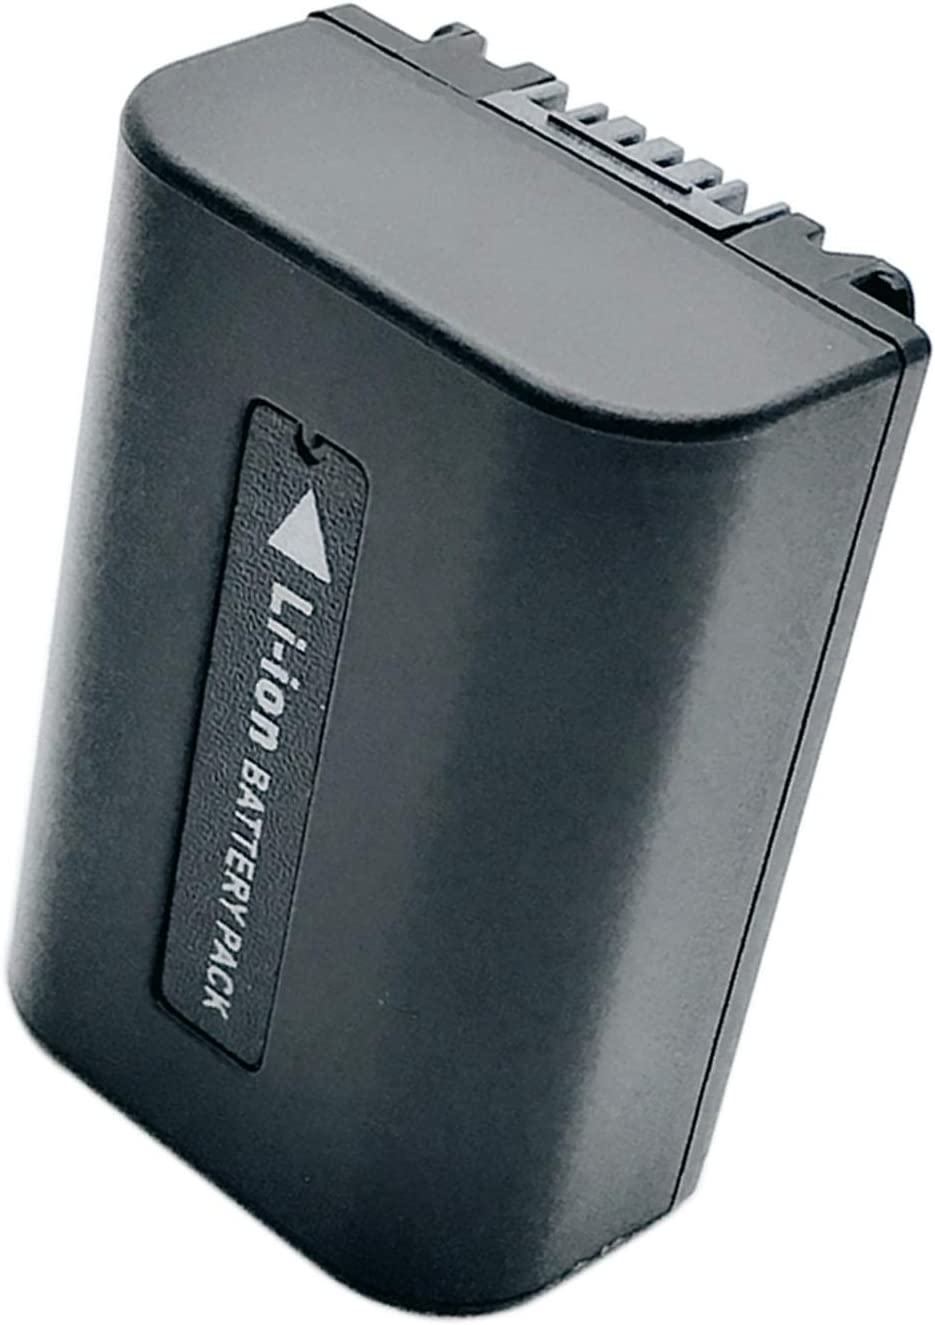 HDR-PJ580VE HDR-PJ590VE Handycam Camcorder Battery Pack for Sony HDR-PJ580V HDR-PJ590V